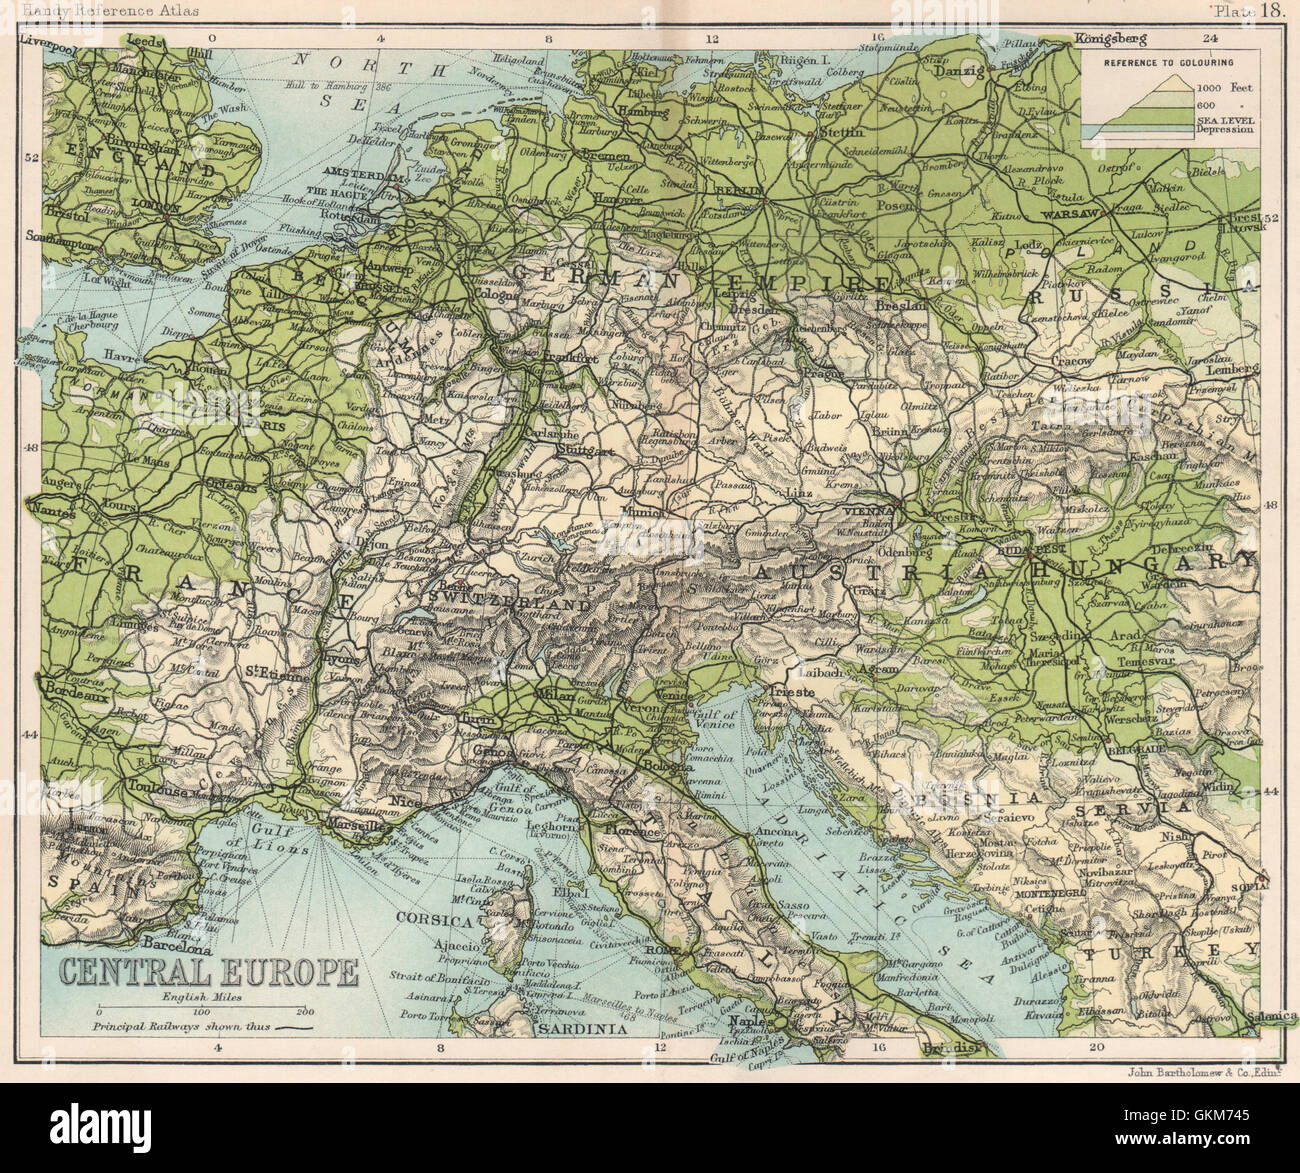 Picture of: Central Europe Alps Northern European Plain Rhine Valley 1904 Stock Photo Alamy